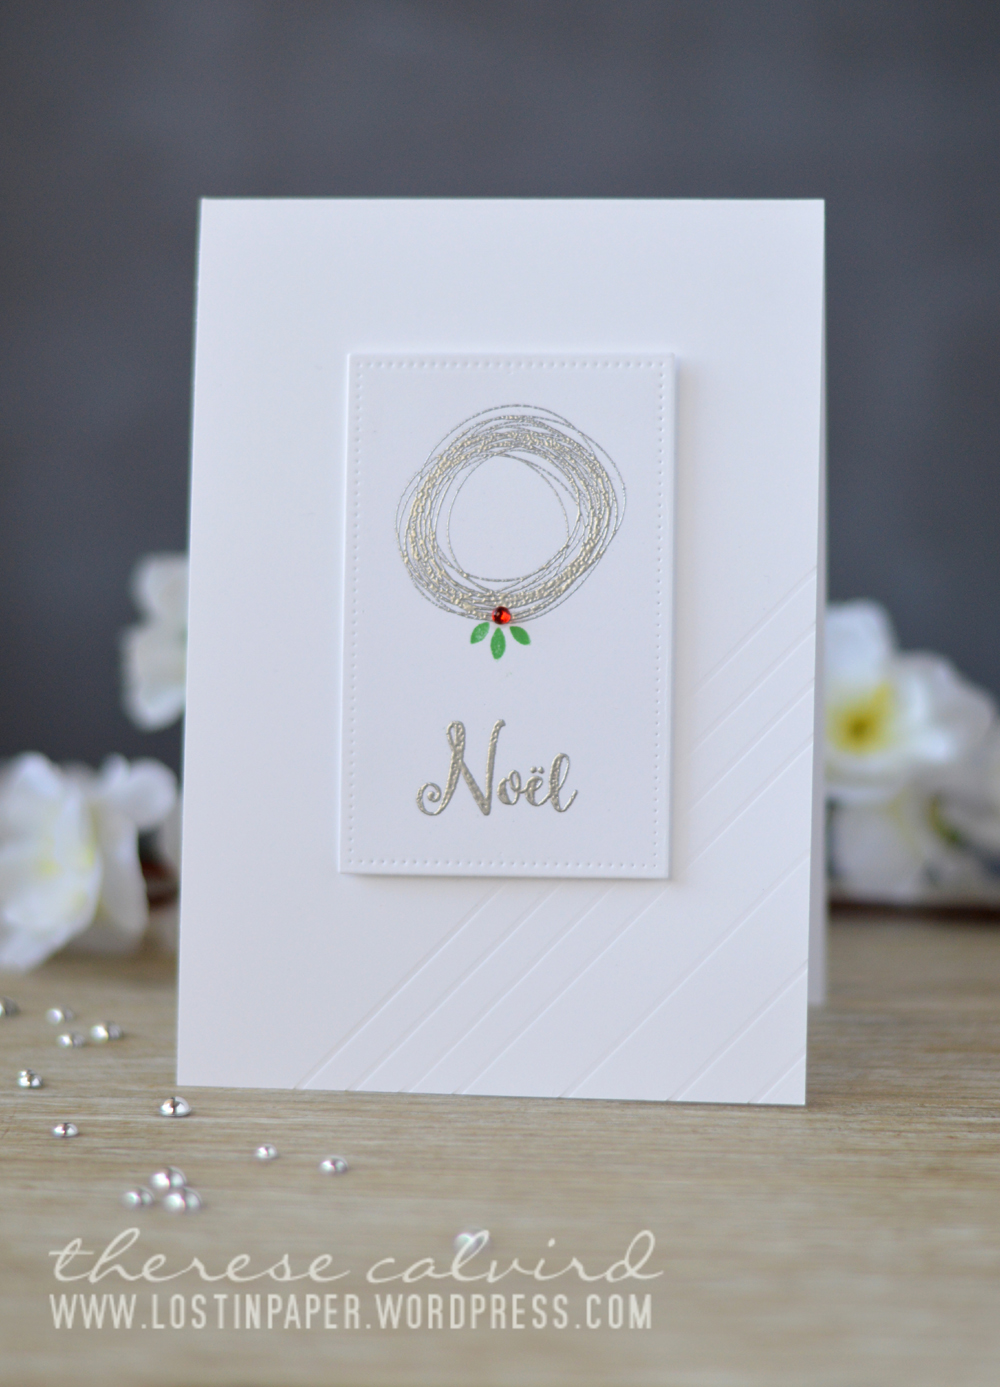 lostinpaper-penny-black-lets-chat-avery-elle-christmas-florals-christmas-card-video-1